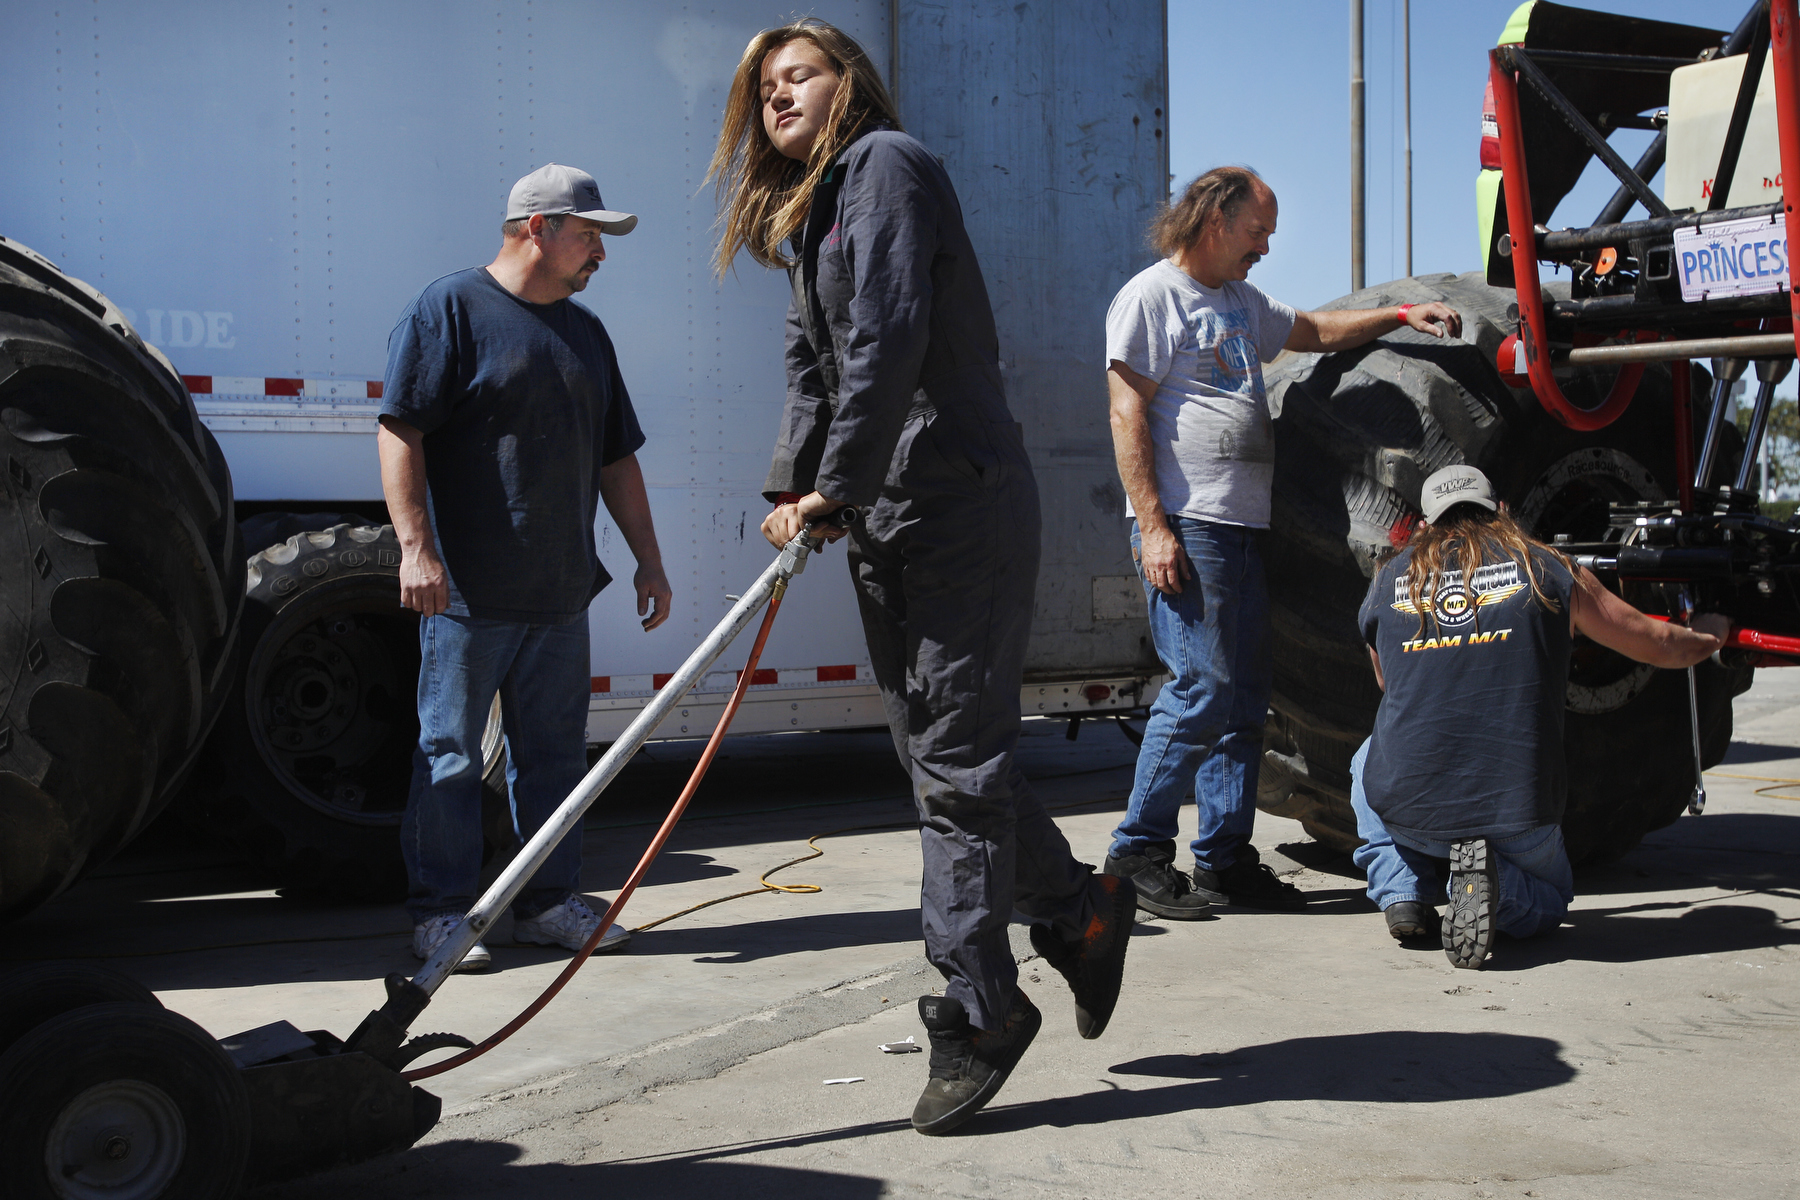 Rosalee Ramer, 16, throws all of her weight onto the handle of a floor jack, using it to raise up her father's monster truck so she can put monster wheels on it as Guillermo Serrano, left, Kelvin Ramer (her father), third from left, and Dave Wever work on her truck in preparation for their evening performance.